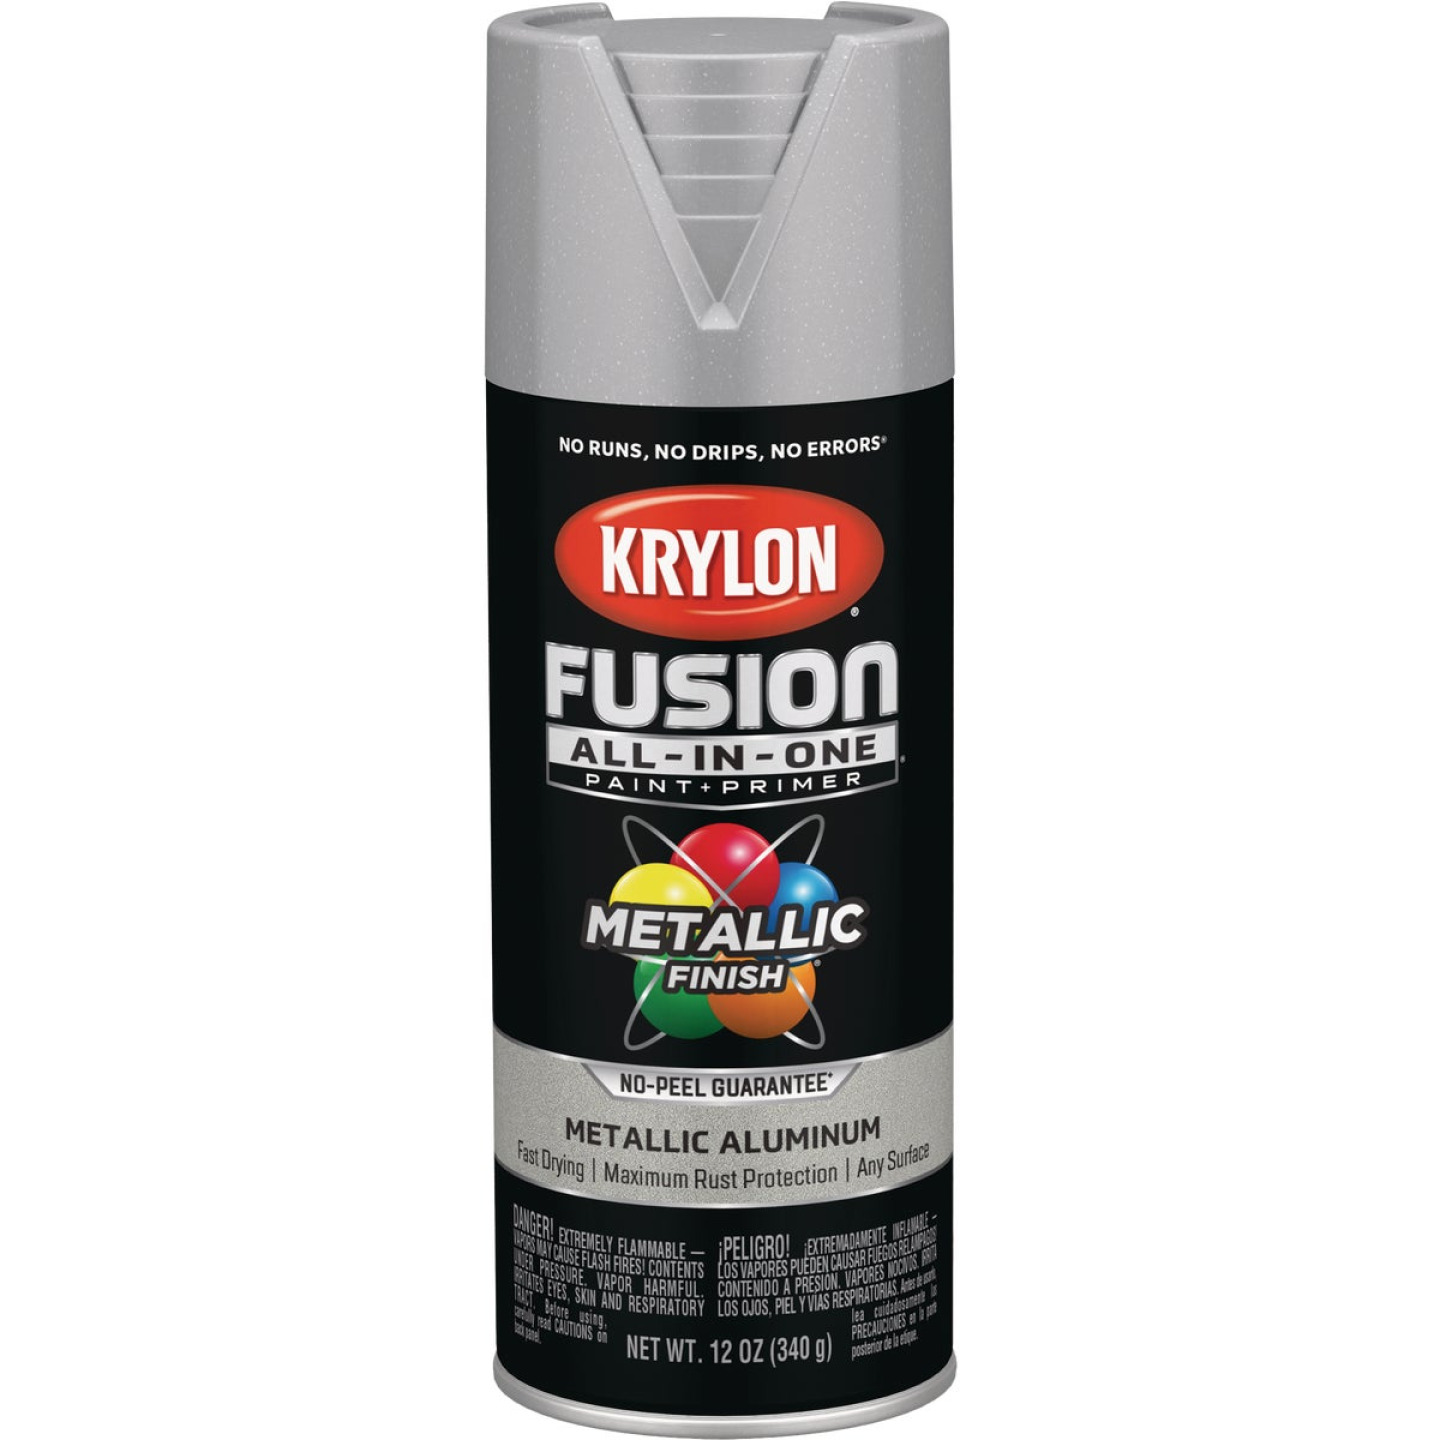 Krylon Fusion All-In-One Metallic Spray Paint & Primer, Aluminum Image 1